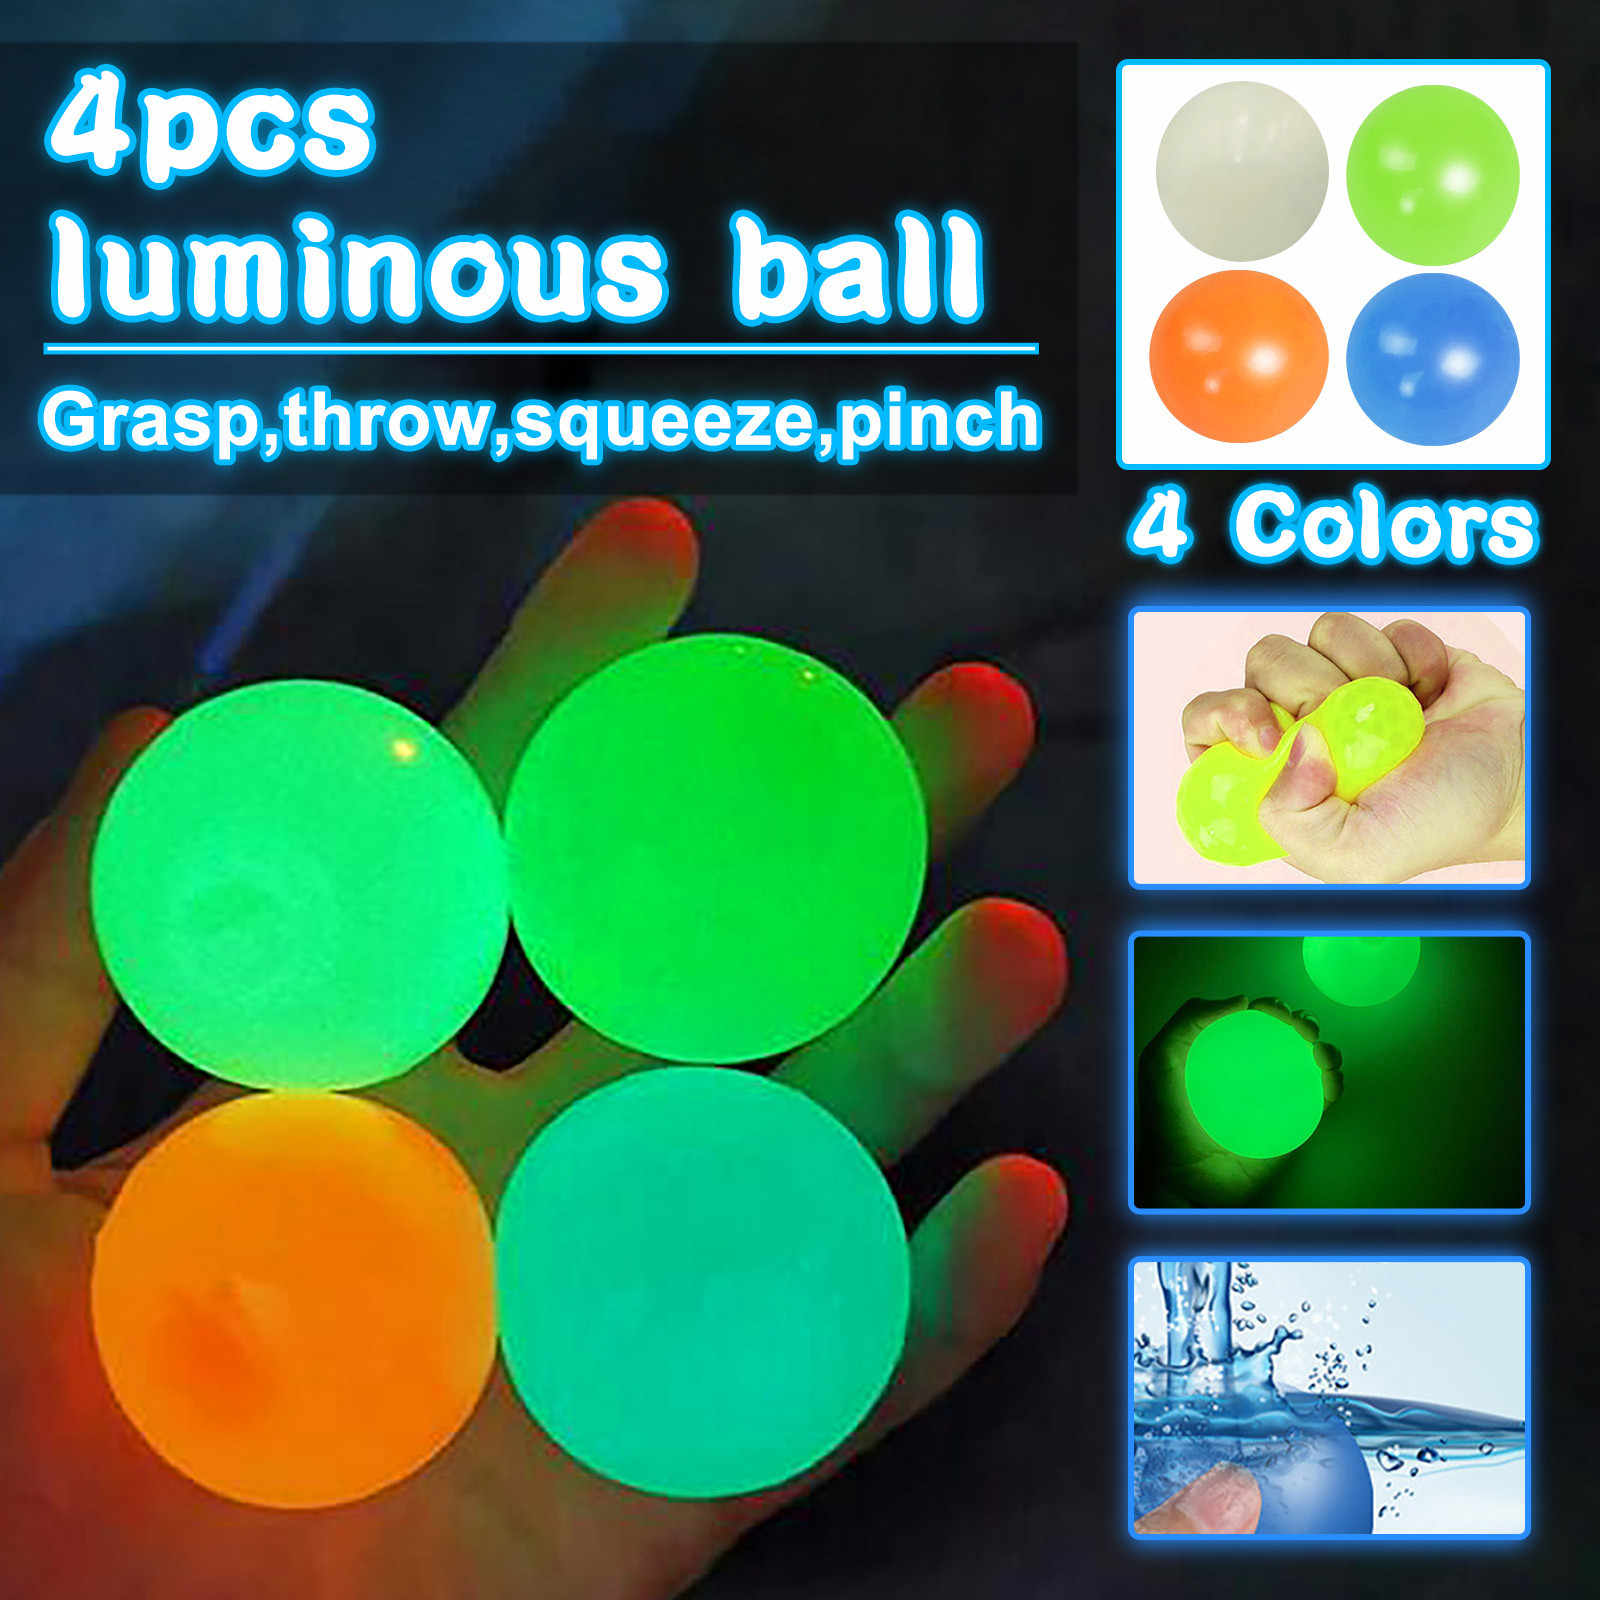 HHYSPA 4PCS Glowing Sticky Balls for Ceiling Fluorescent Sticky Target Anti Stress Reliever Balls,for Kids and Adults Tear-Resistant Fun Toy for ADHD Anxiety OCD